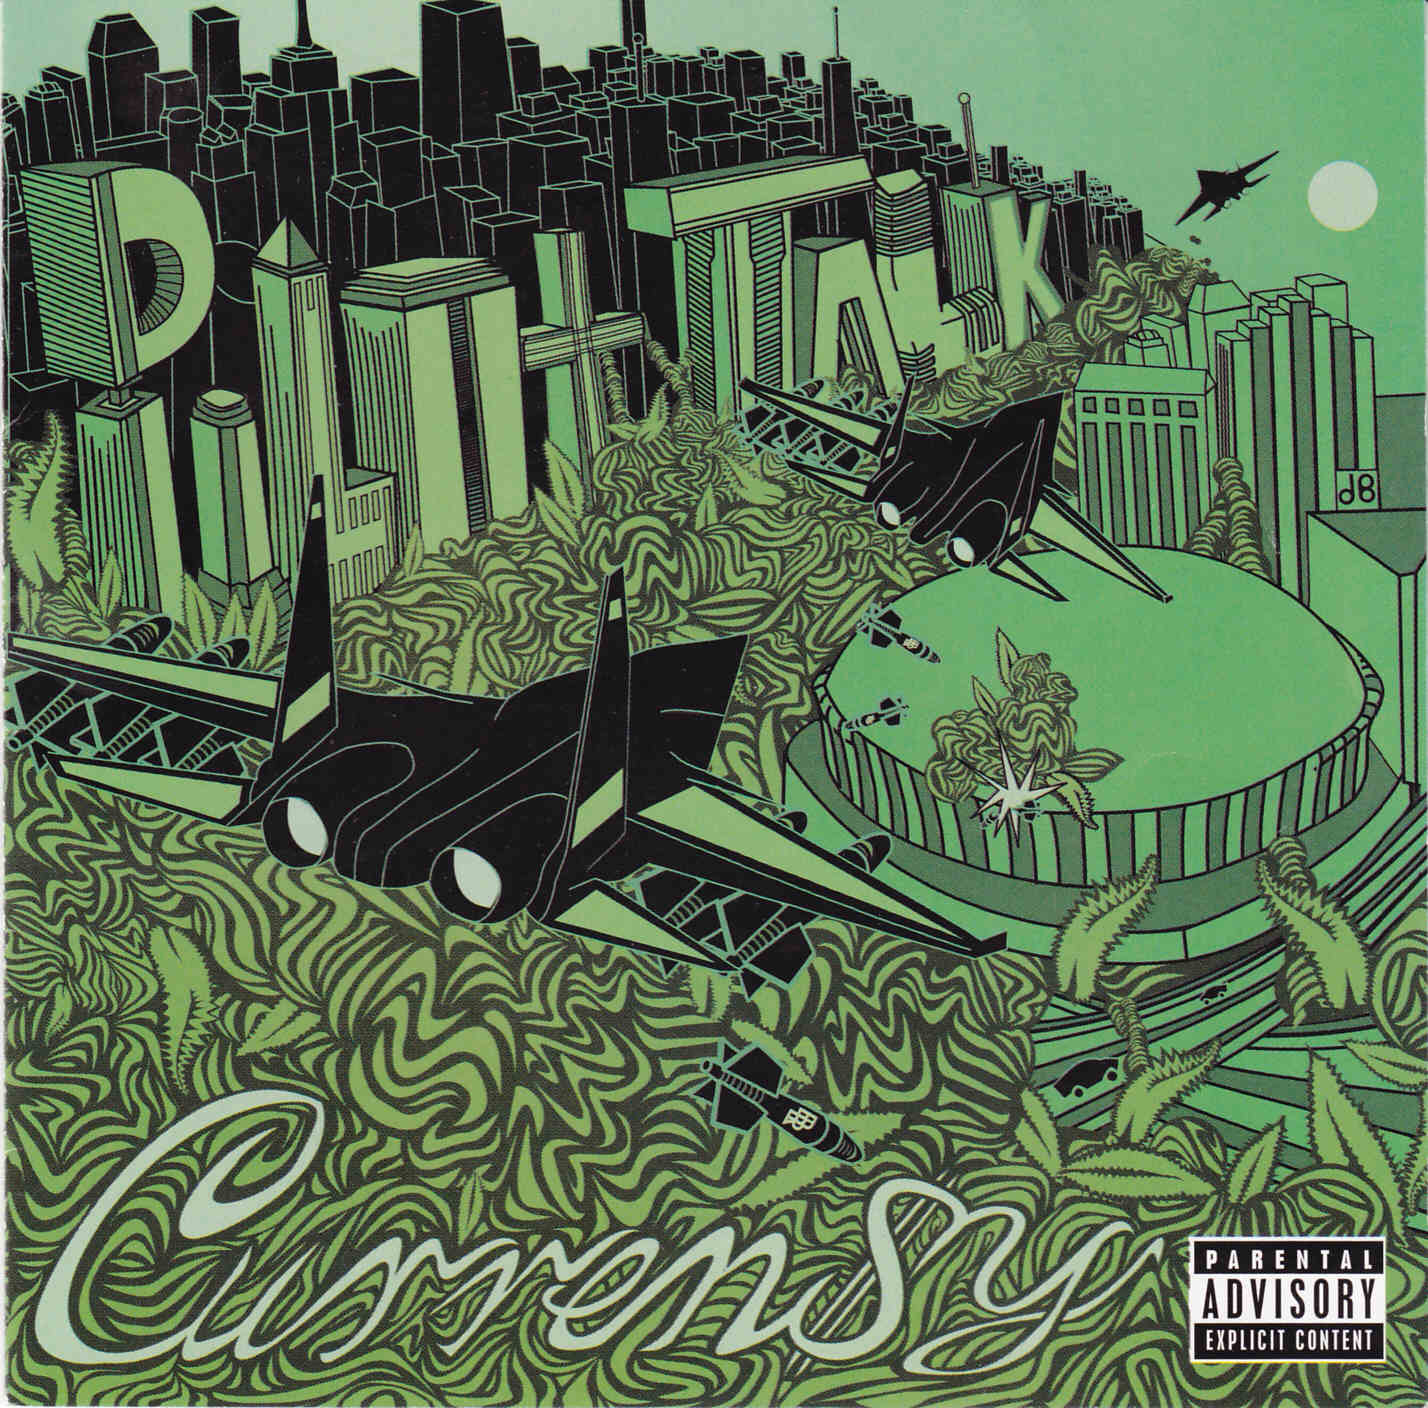 Pilot Talk Curren$Y